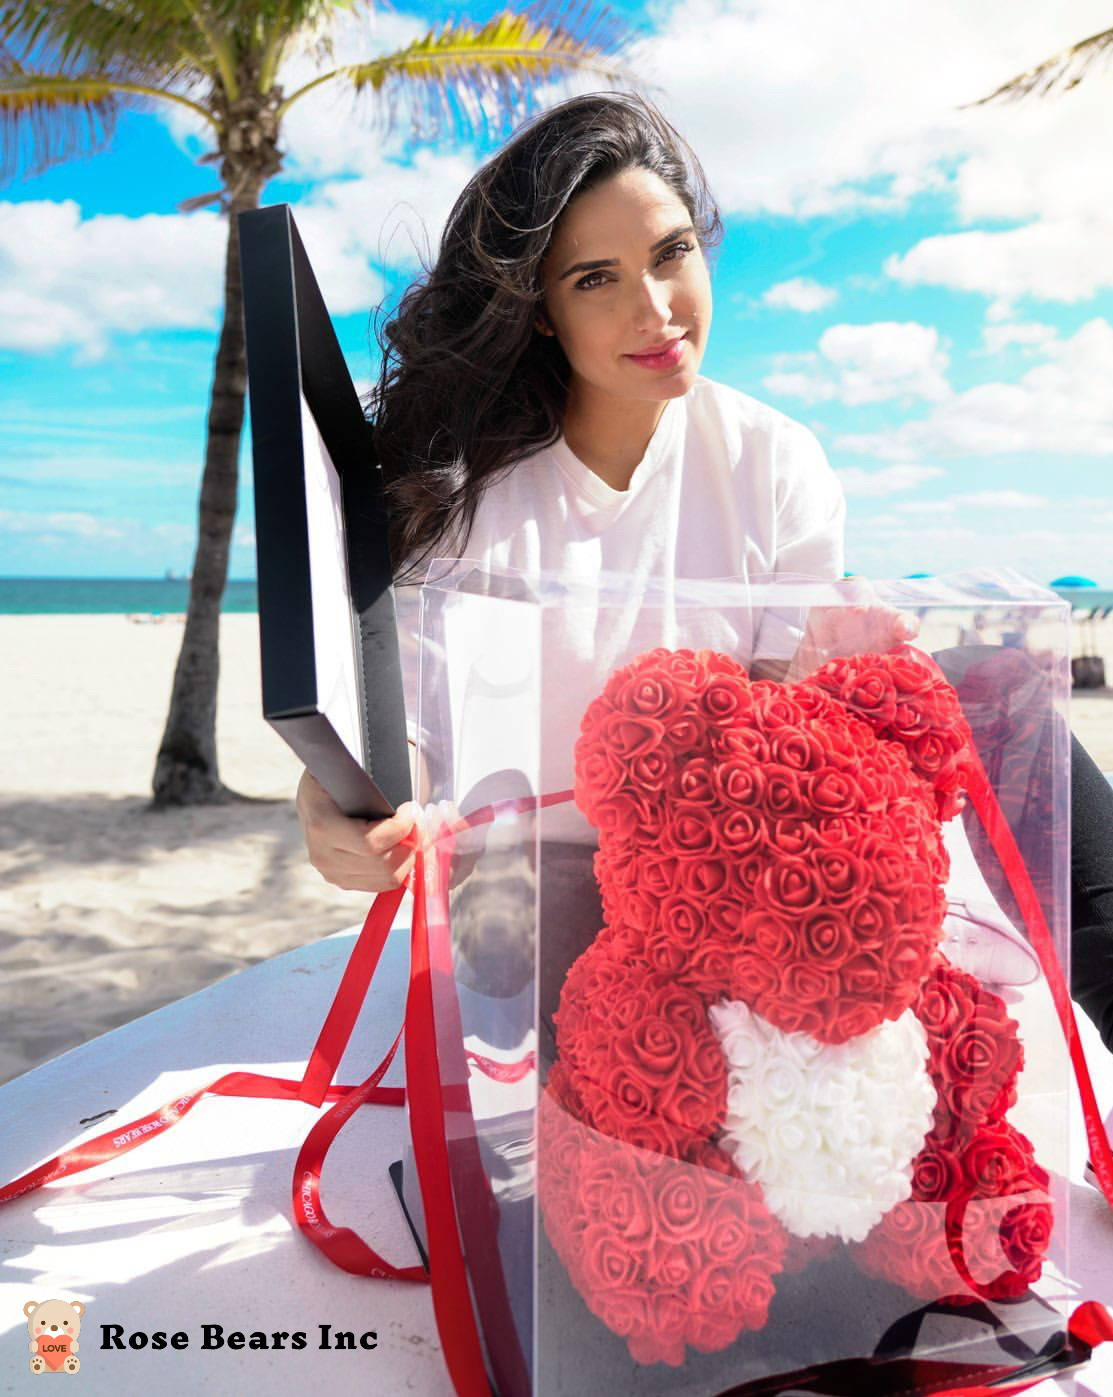 gifts for her under $100,gifts for her valentines day,